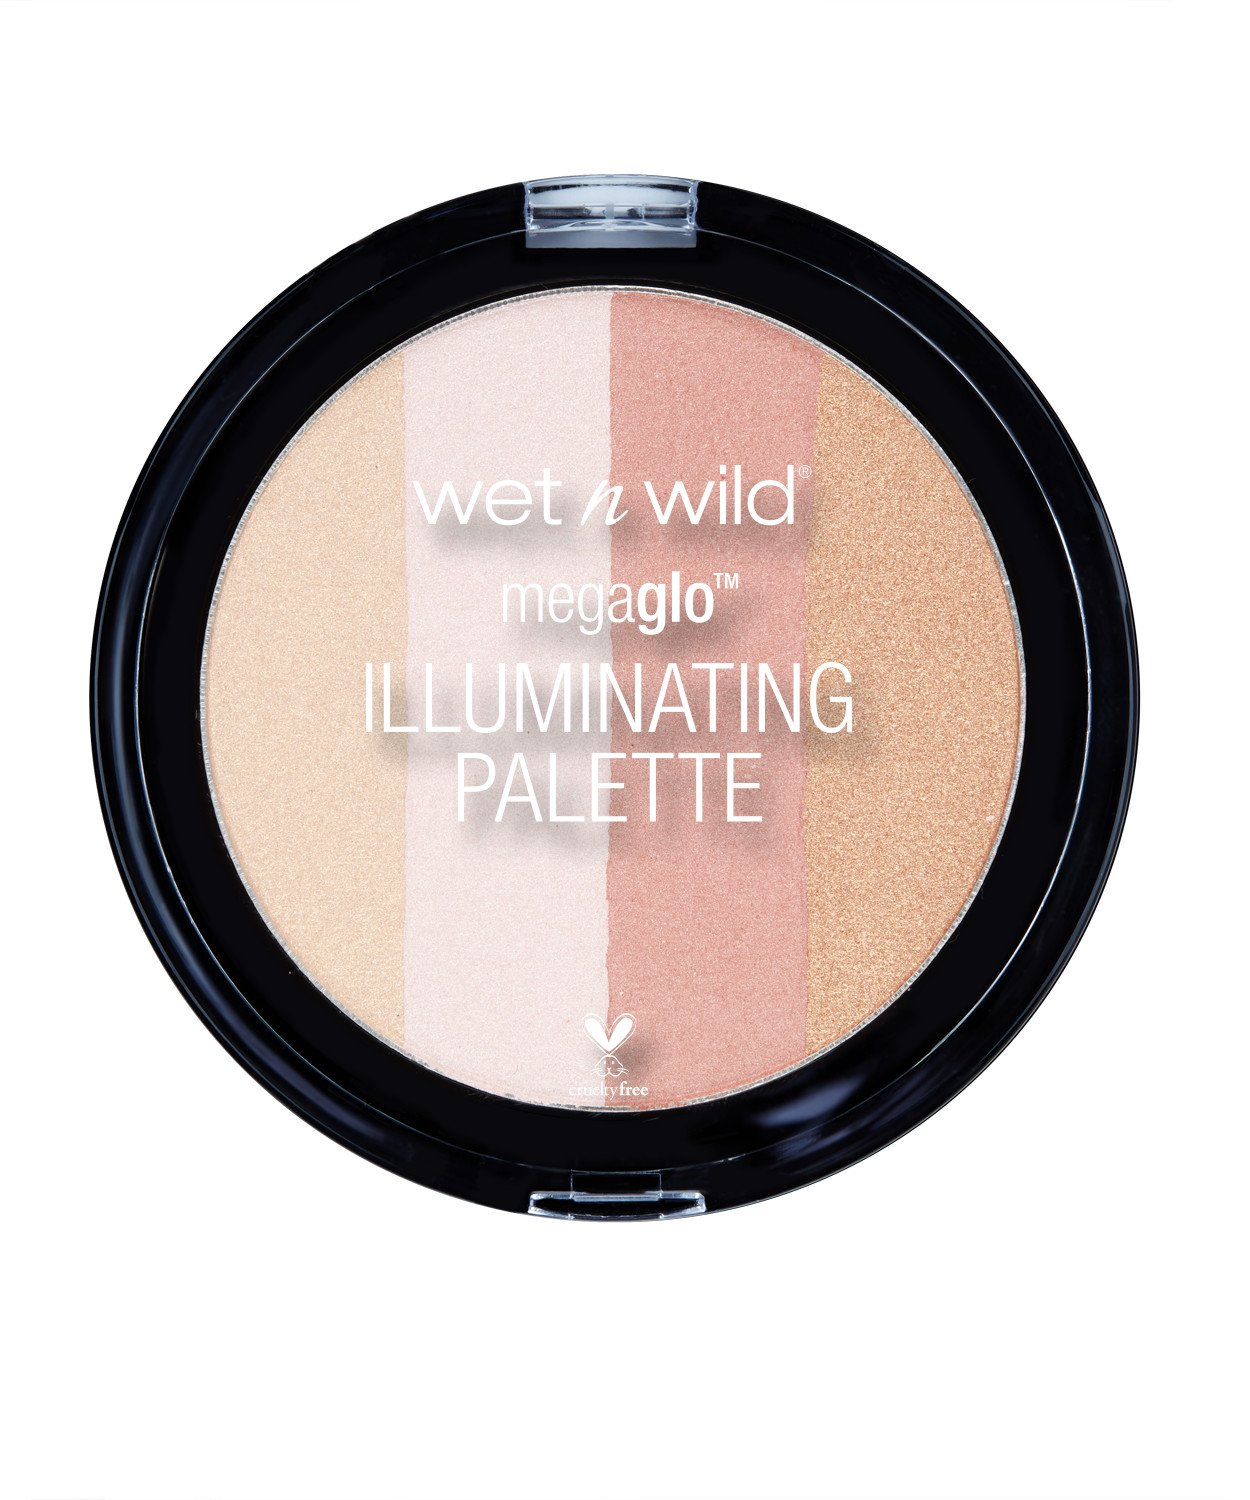 Wet n Wild 320 Megaglo illuminating palette, 0.41 Ounce, Catwalk Pink Markwins Beauty Products